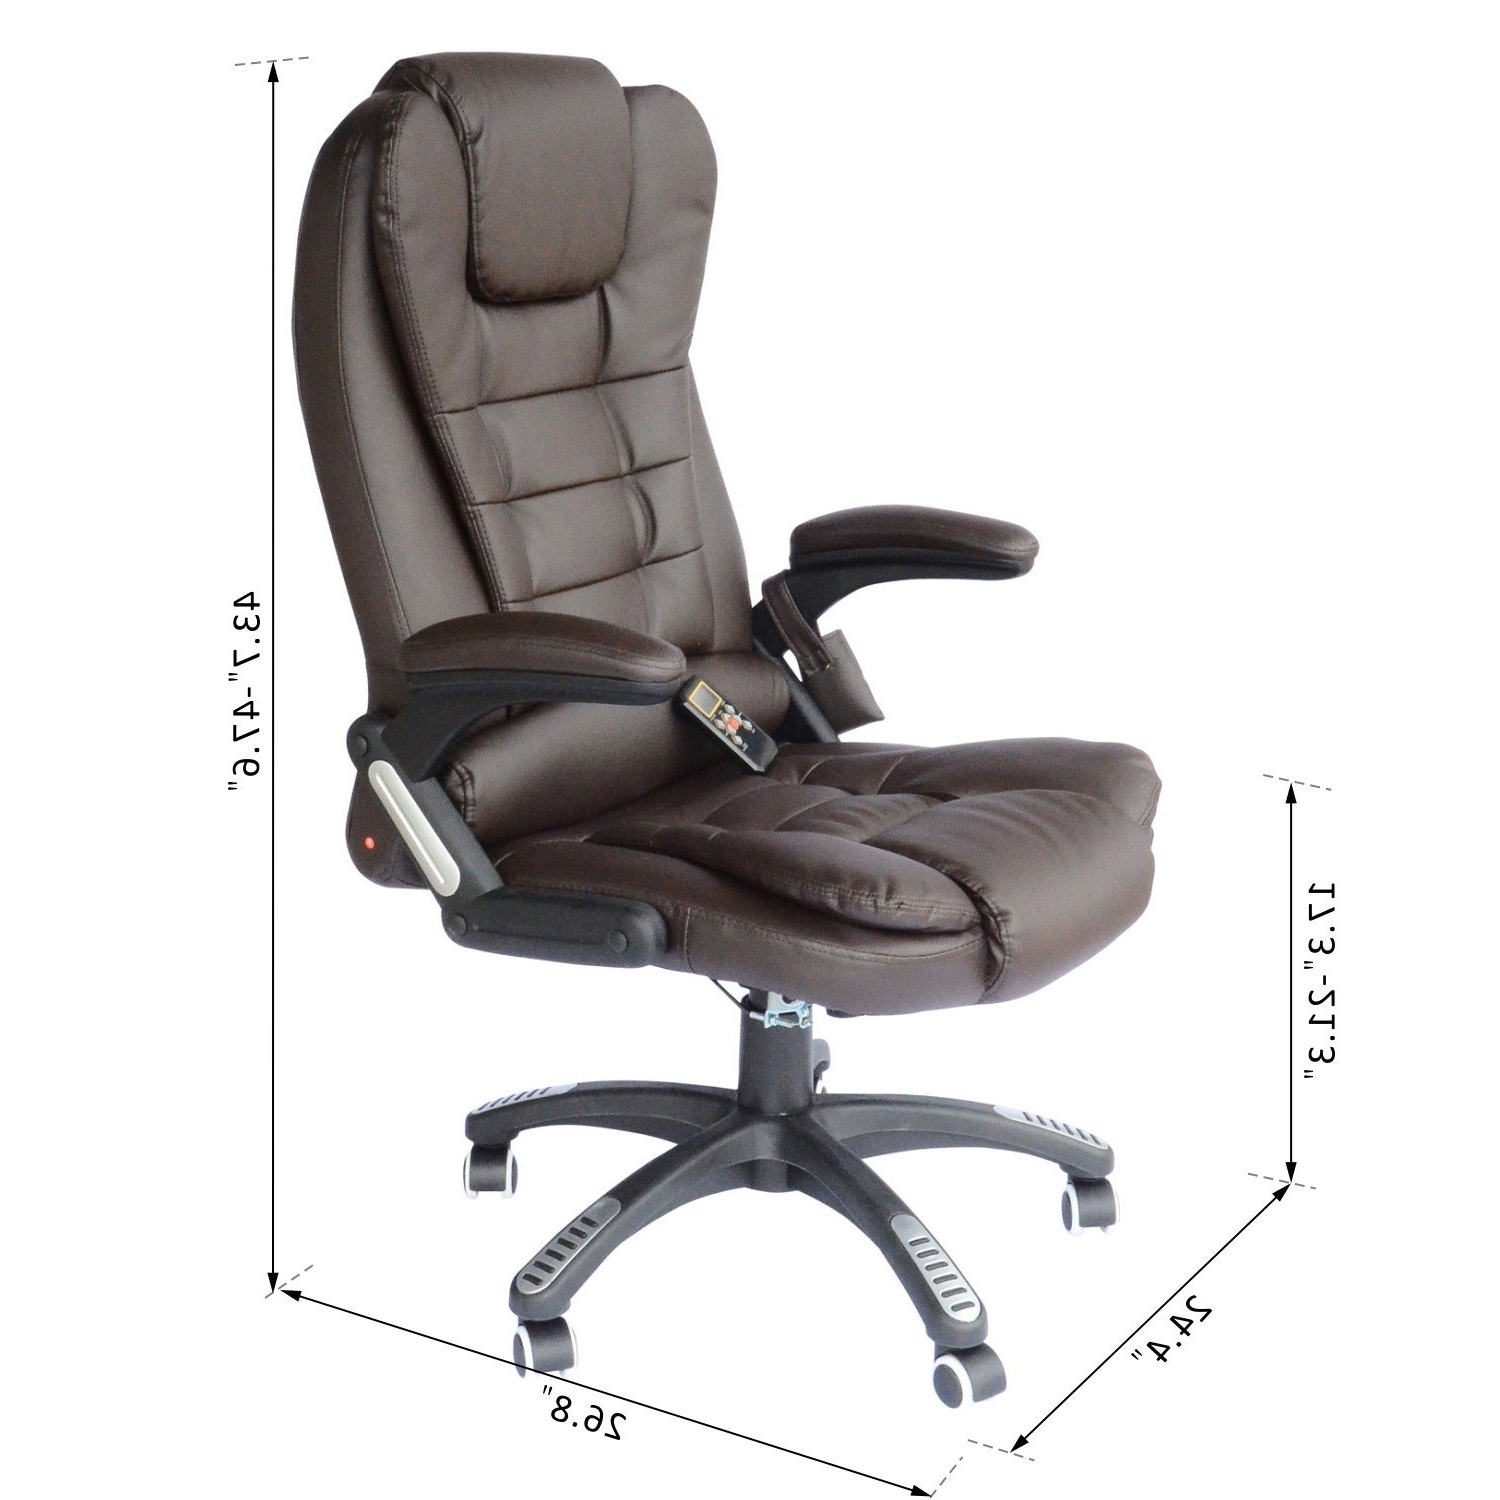 Fashionable Leather Executive Office Massage Chairs Regarding Homcom Heated Ergonomic Massage Chair Swivel High Back Leather (View 4 of 20)